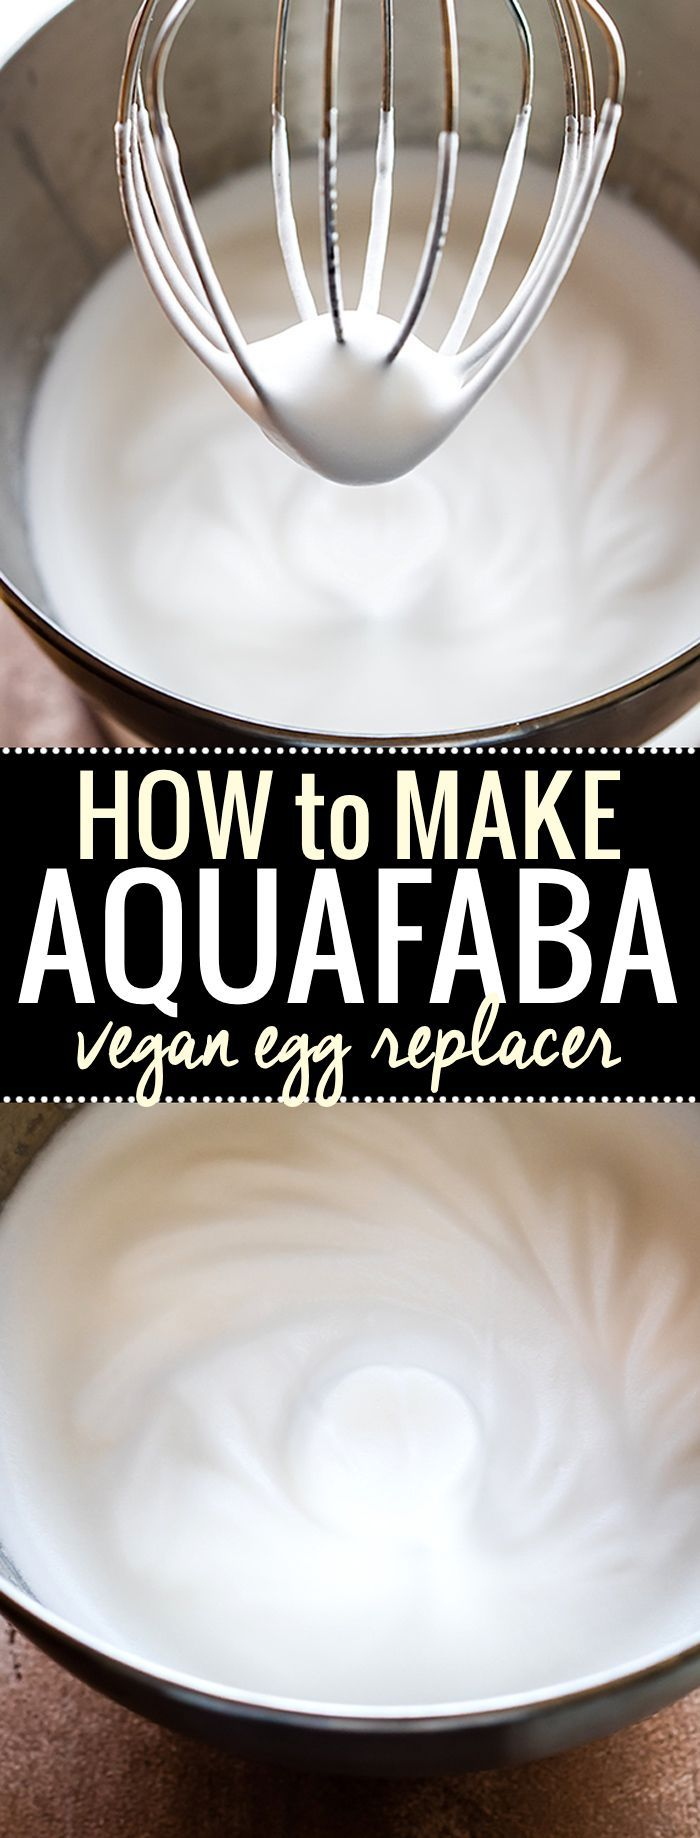 Aquafaba is the new trend in Vegan baking and Egg Free baking. It's easy, healthy, and versatile! You can whip it up to use in place of egg whites, or just use the juice (Chickpea brine) for whole egg baking.  Learn how to make Aquafaba with just a can of